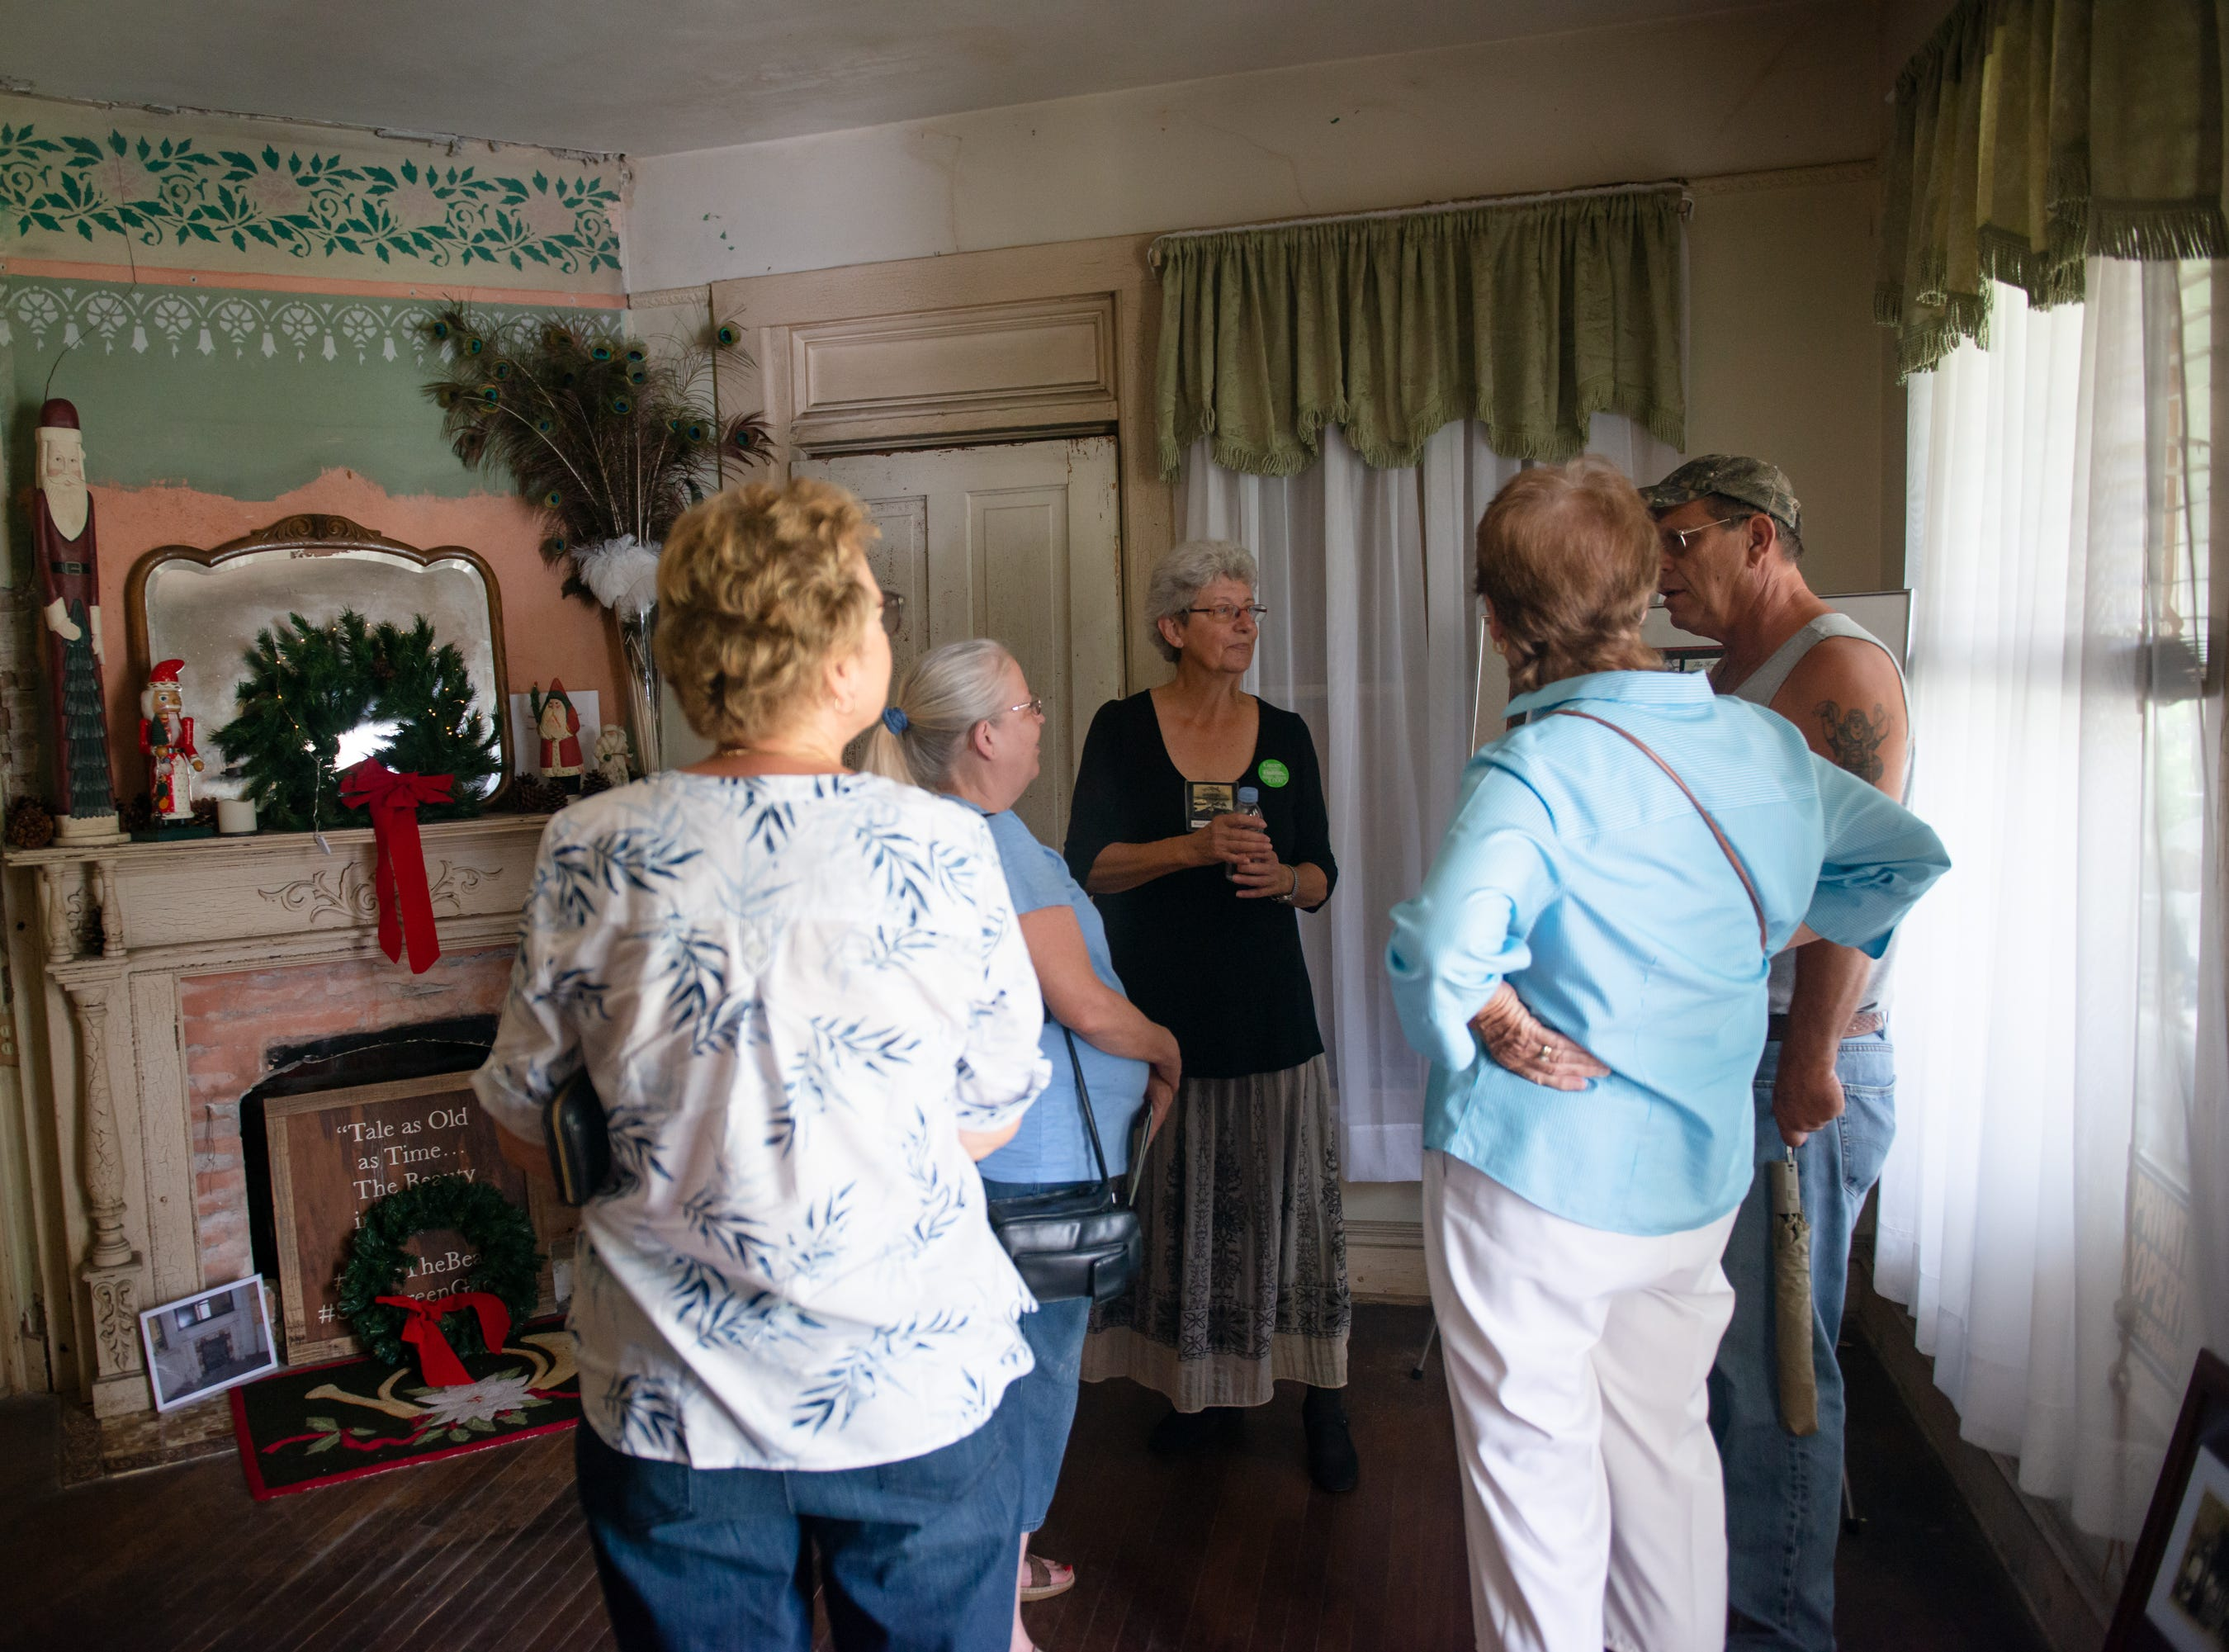 Visitors take a tour at the Christmas in July event, which raised money to restore the Green Gables Victorian house in Melbourne.